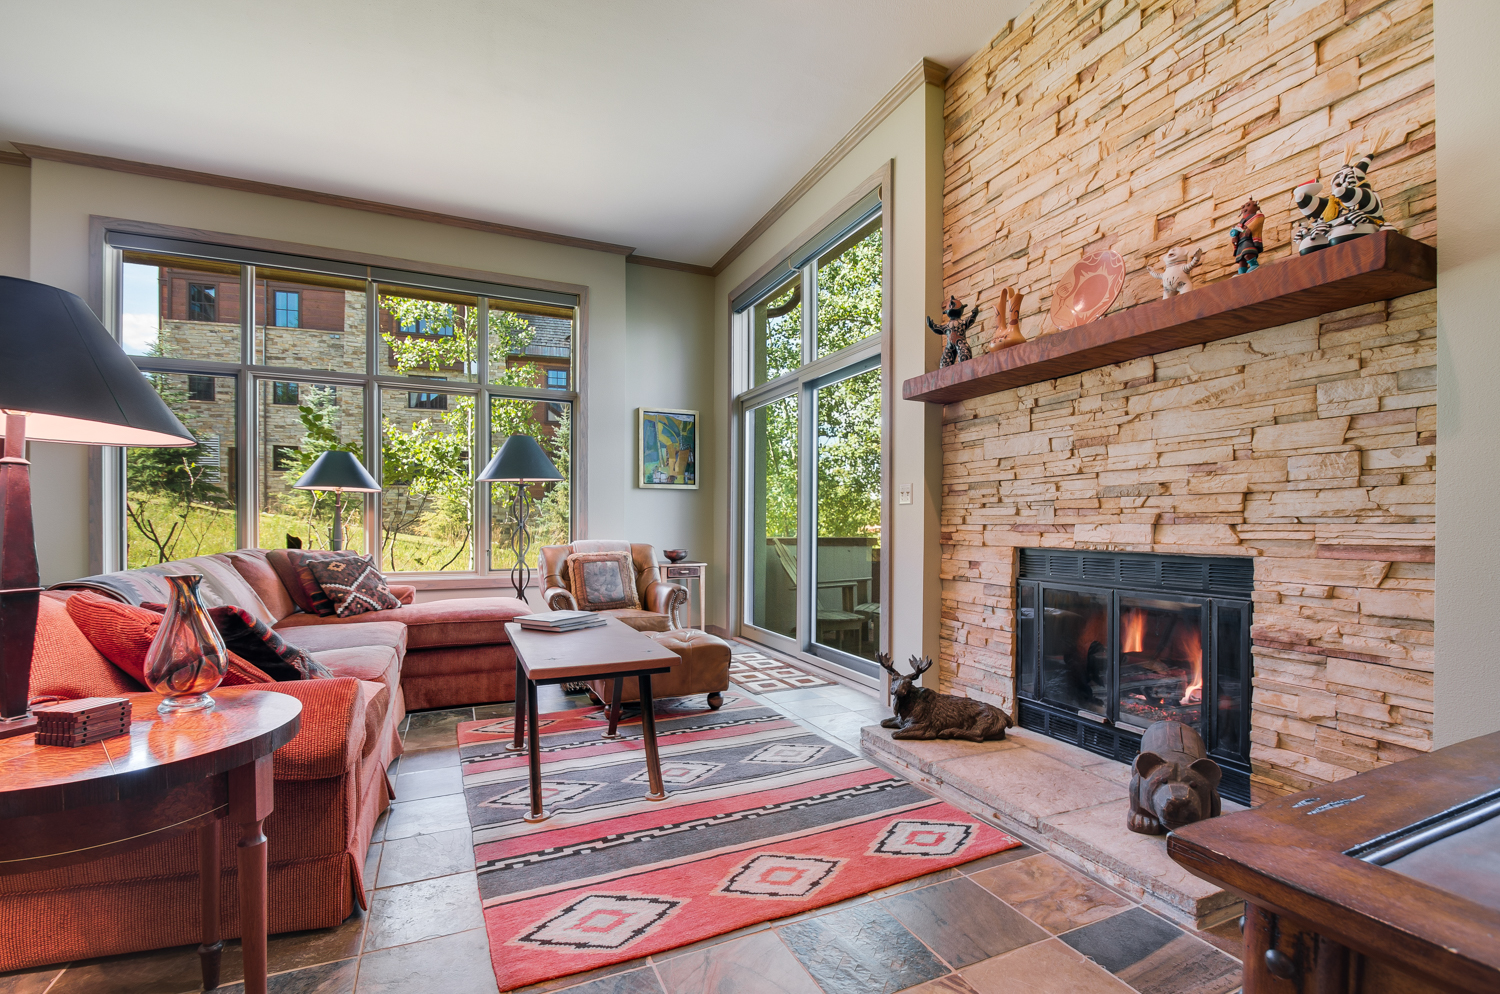 Living area fireplace with stone fireplace